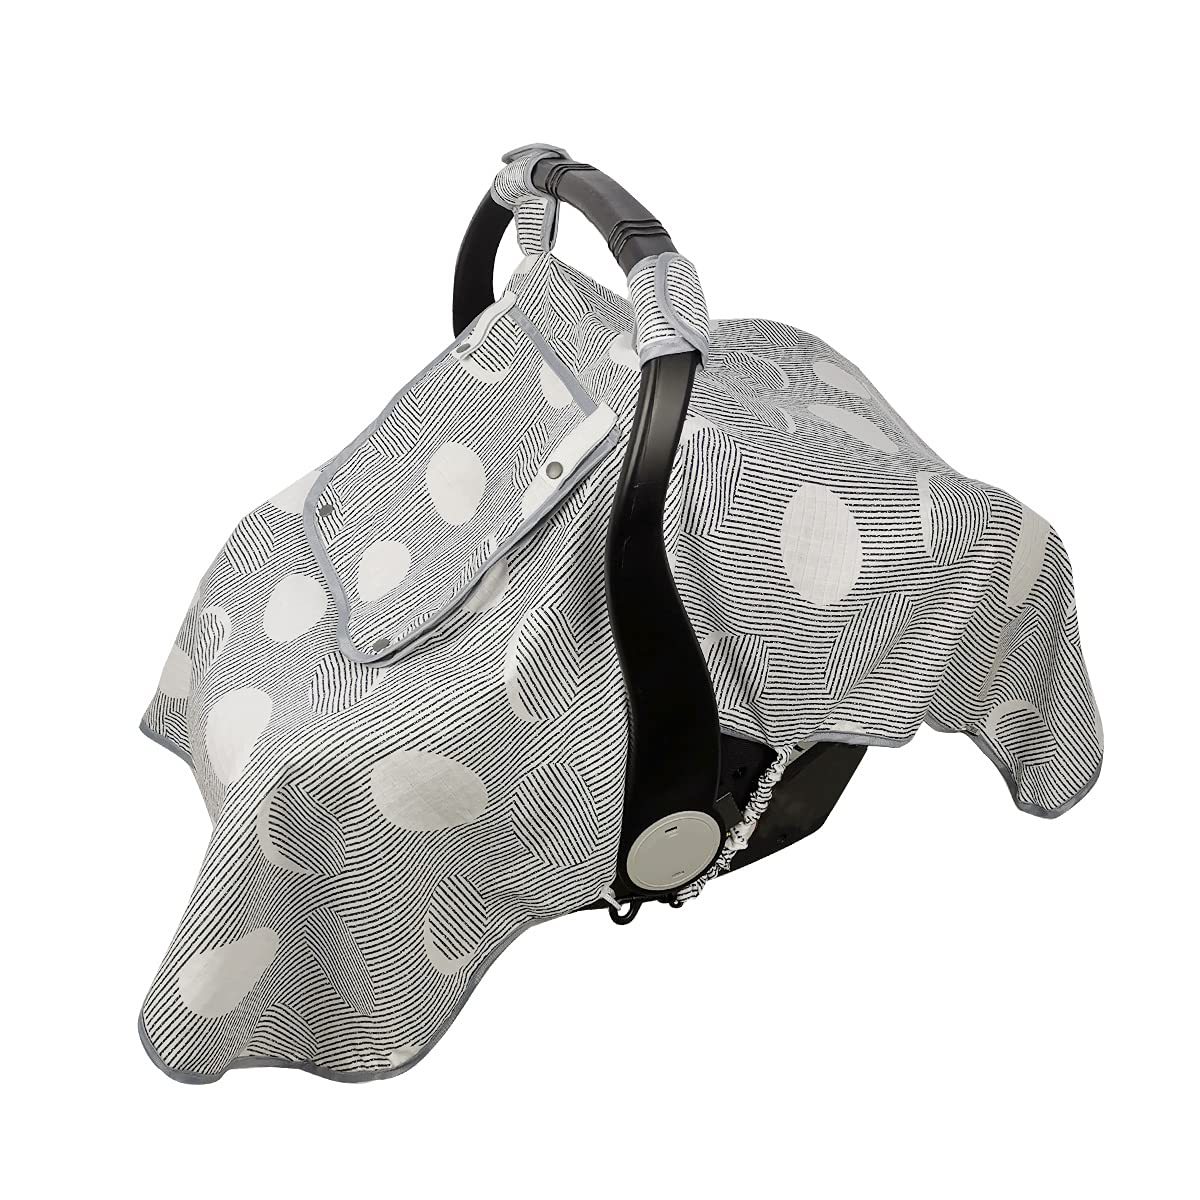 ICOPUCA Car seat Fixed price for sale Covers for Babies Girls Max 89% OFF Muslin b Cover carseat